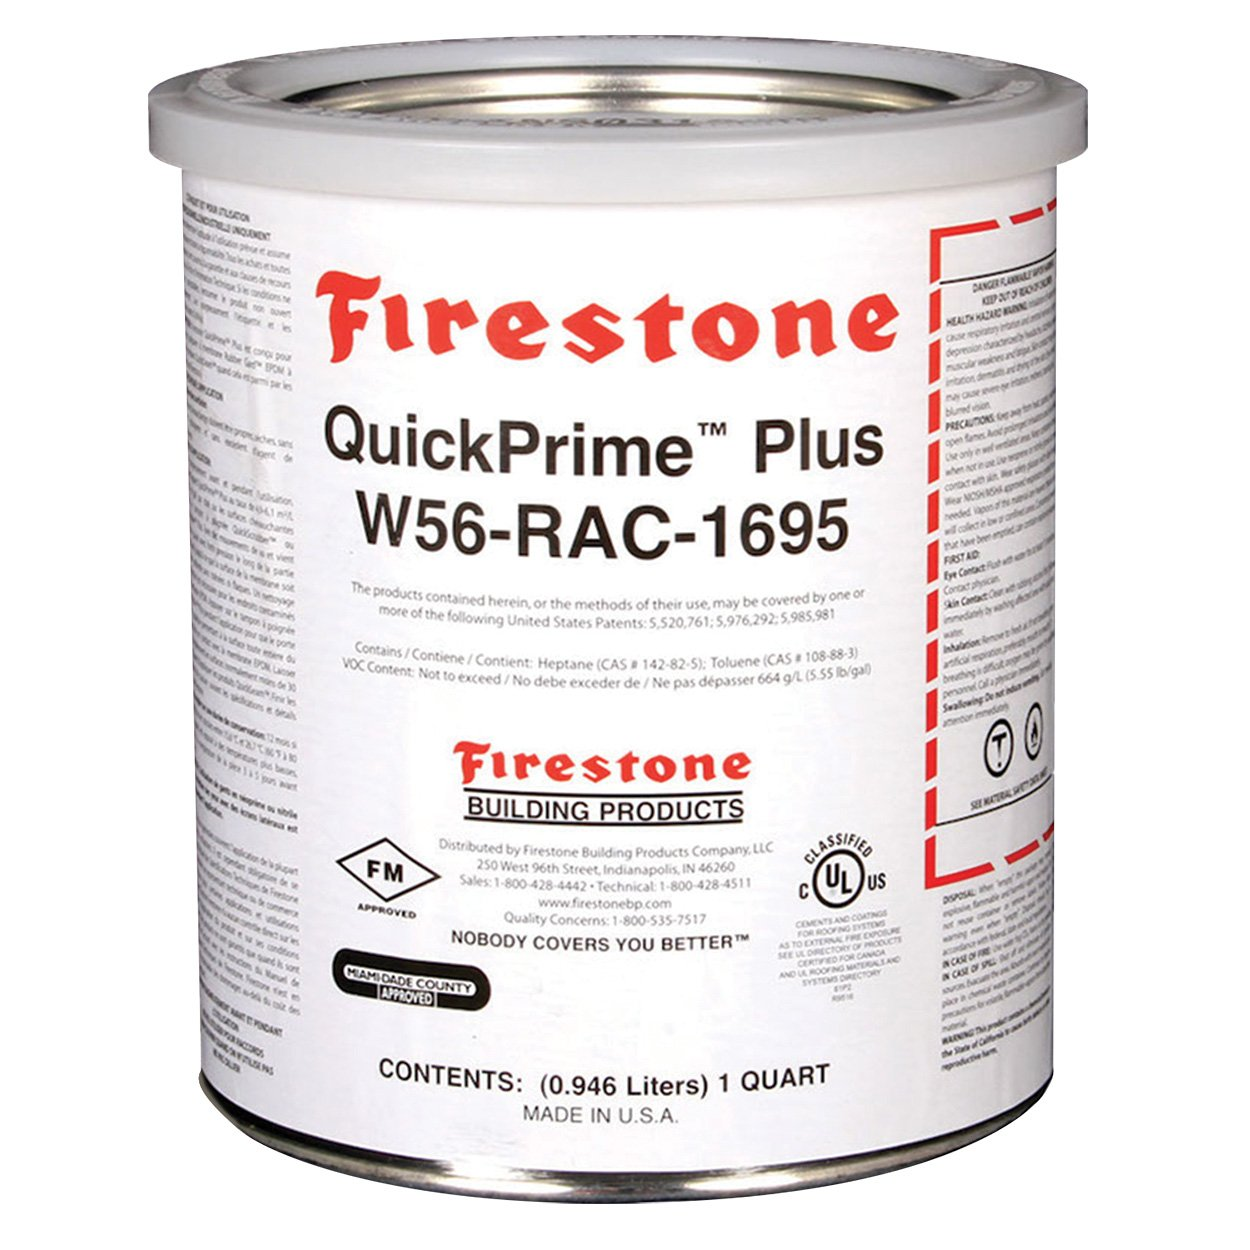 Aquascape Seam Tape EPDM Liner Primer by Firestone Quick Prime Plus for Pond and Water Features | 54008 by Aquascape